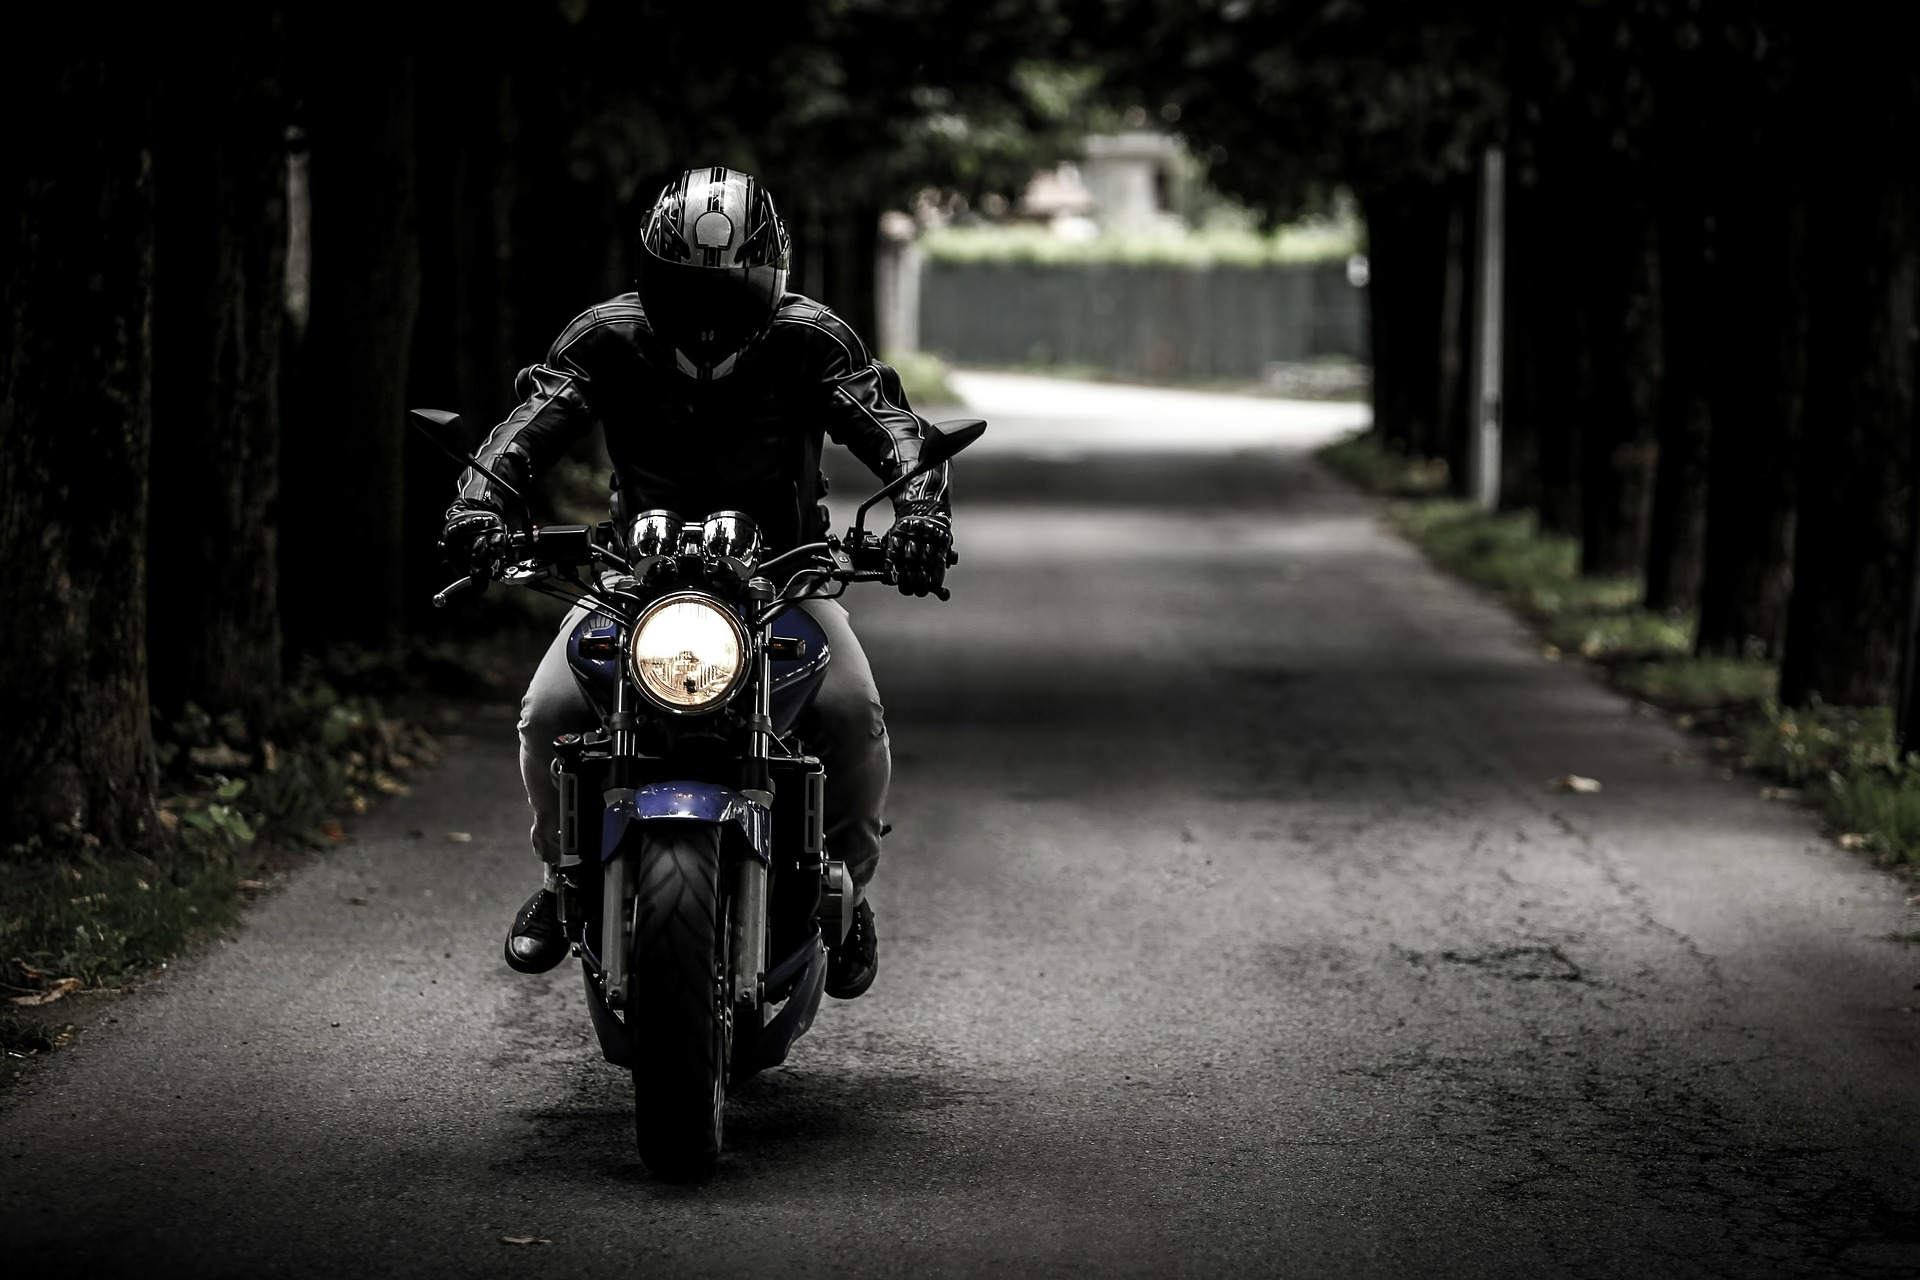 Tips for preventing motorcycle accidents